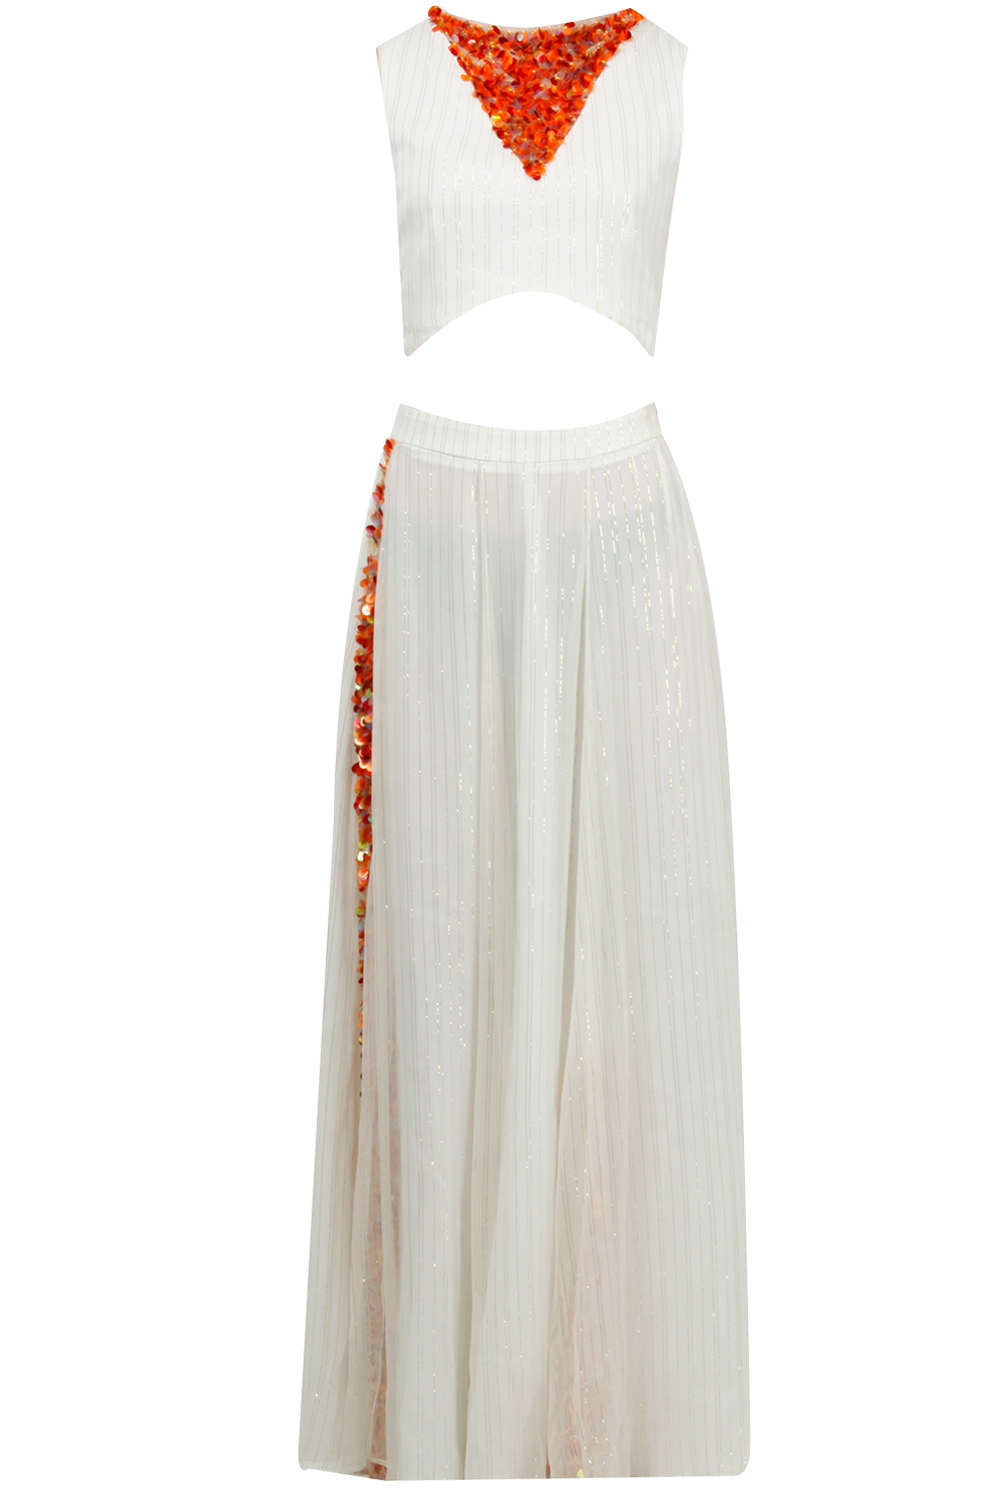 9e4c96cbad6 White and orange embroidered skirt and top set by Riddhi & Revika |  Carmaonline shop